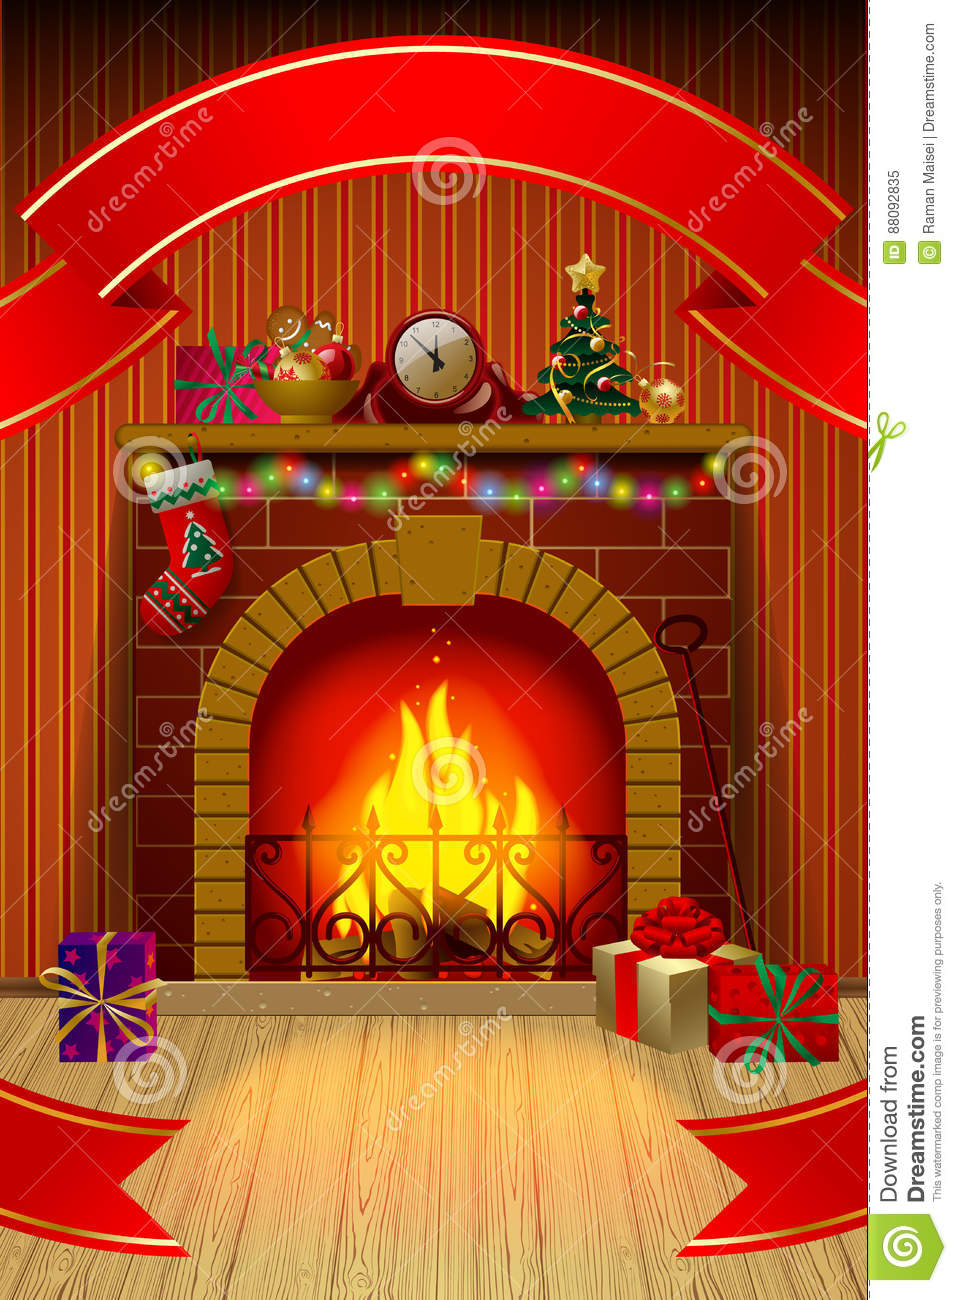 Christmas card with red ribbon, fireplace in interior, holiday d